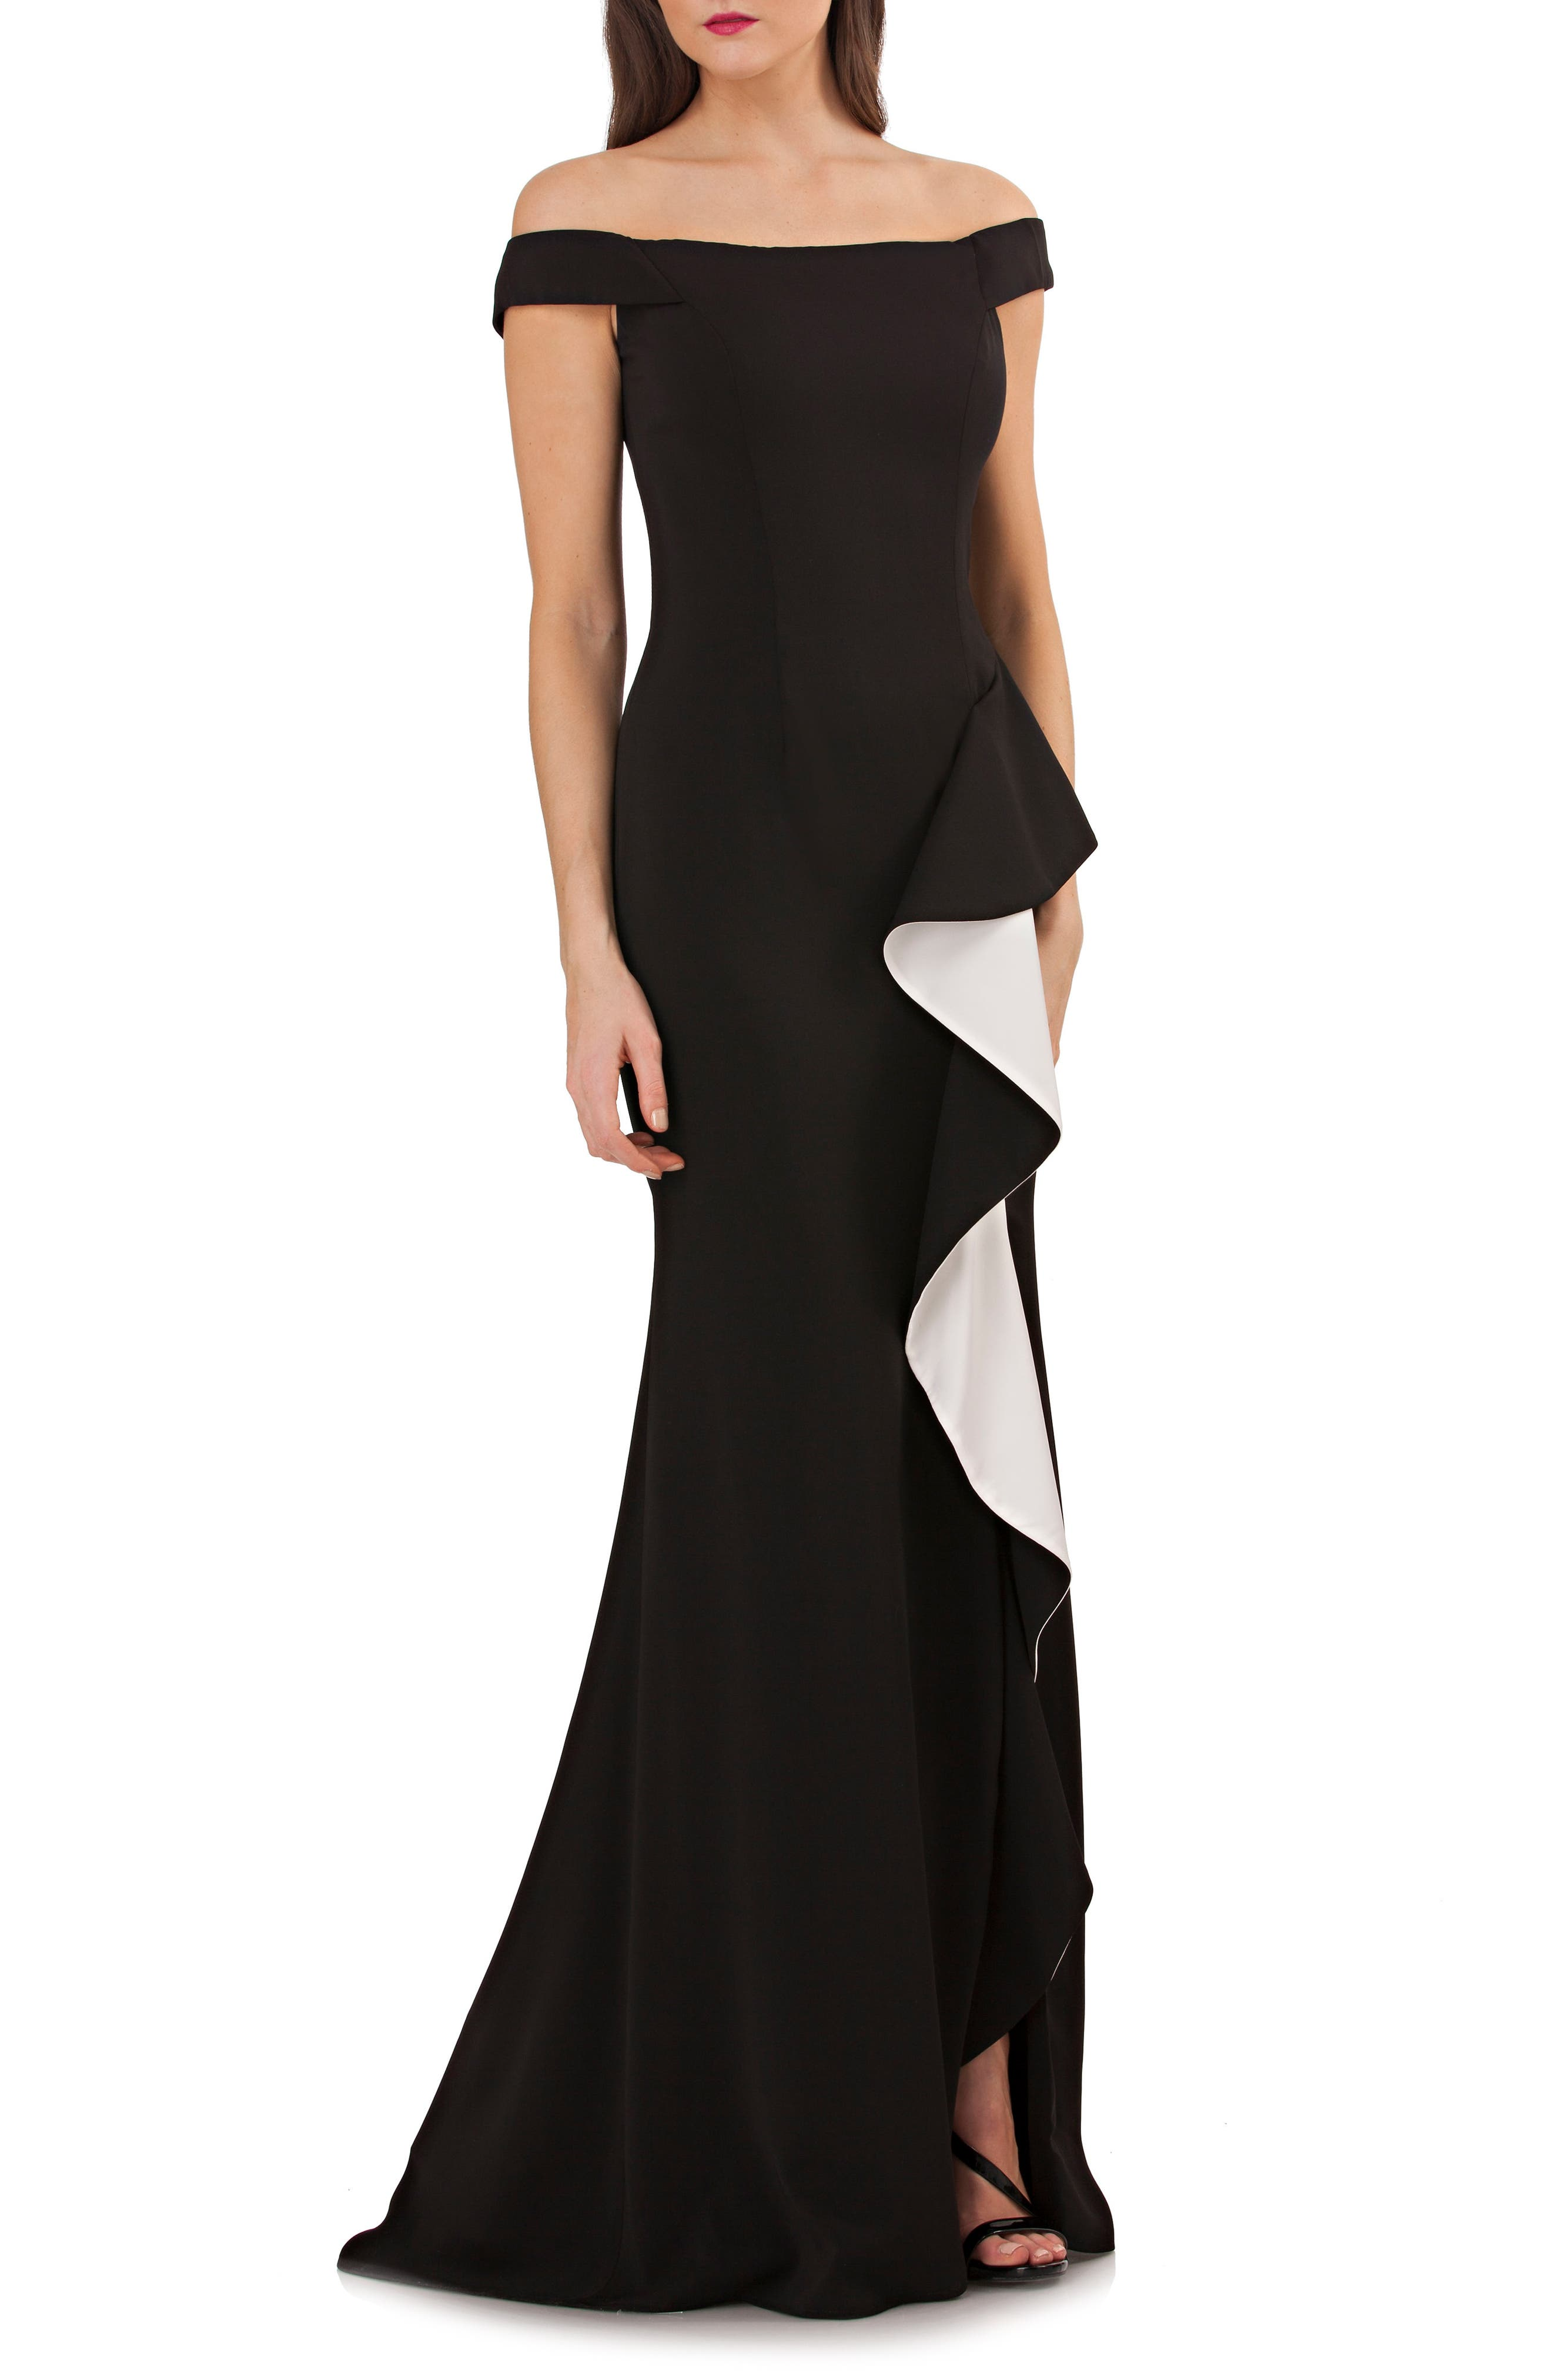 Ruffle Off the Shoulder Gown,                         Main,                         color, Black/ White